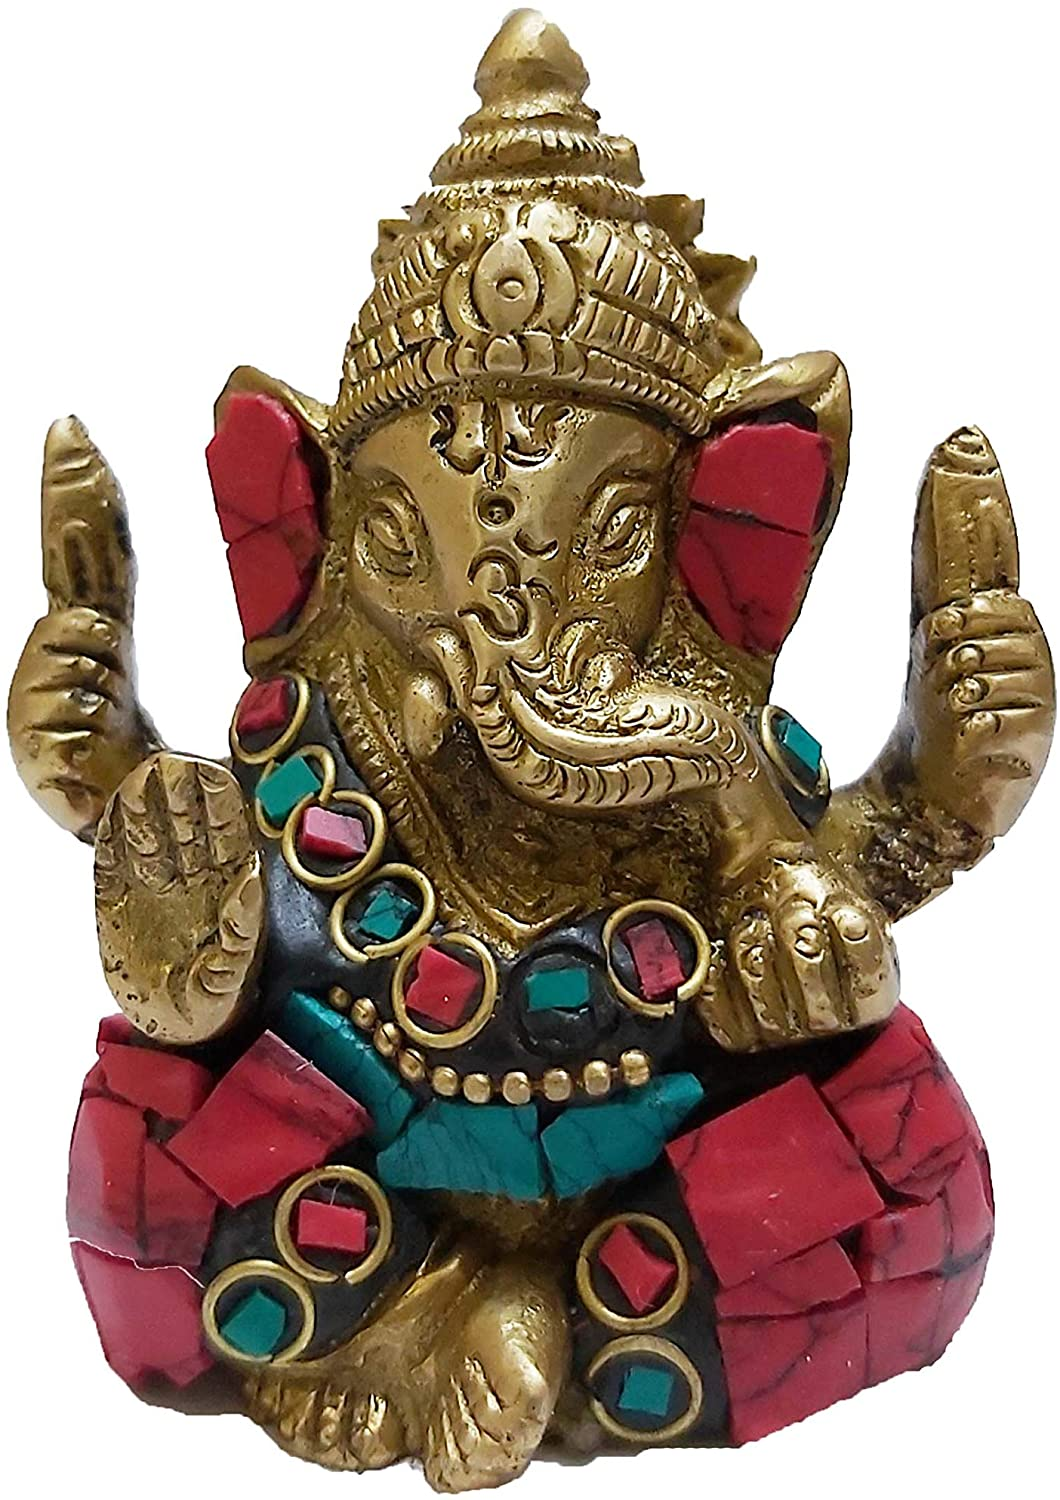 PARIJAT HANDICRAFT The Blessing God. A Colored & Gold Statue of Lord Ganesh Ganpati Elephant Hindu God Made from Solid Brass Metal with Turquoise Gem-Stone